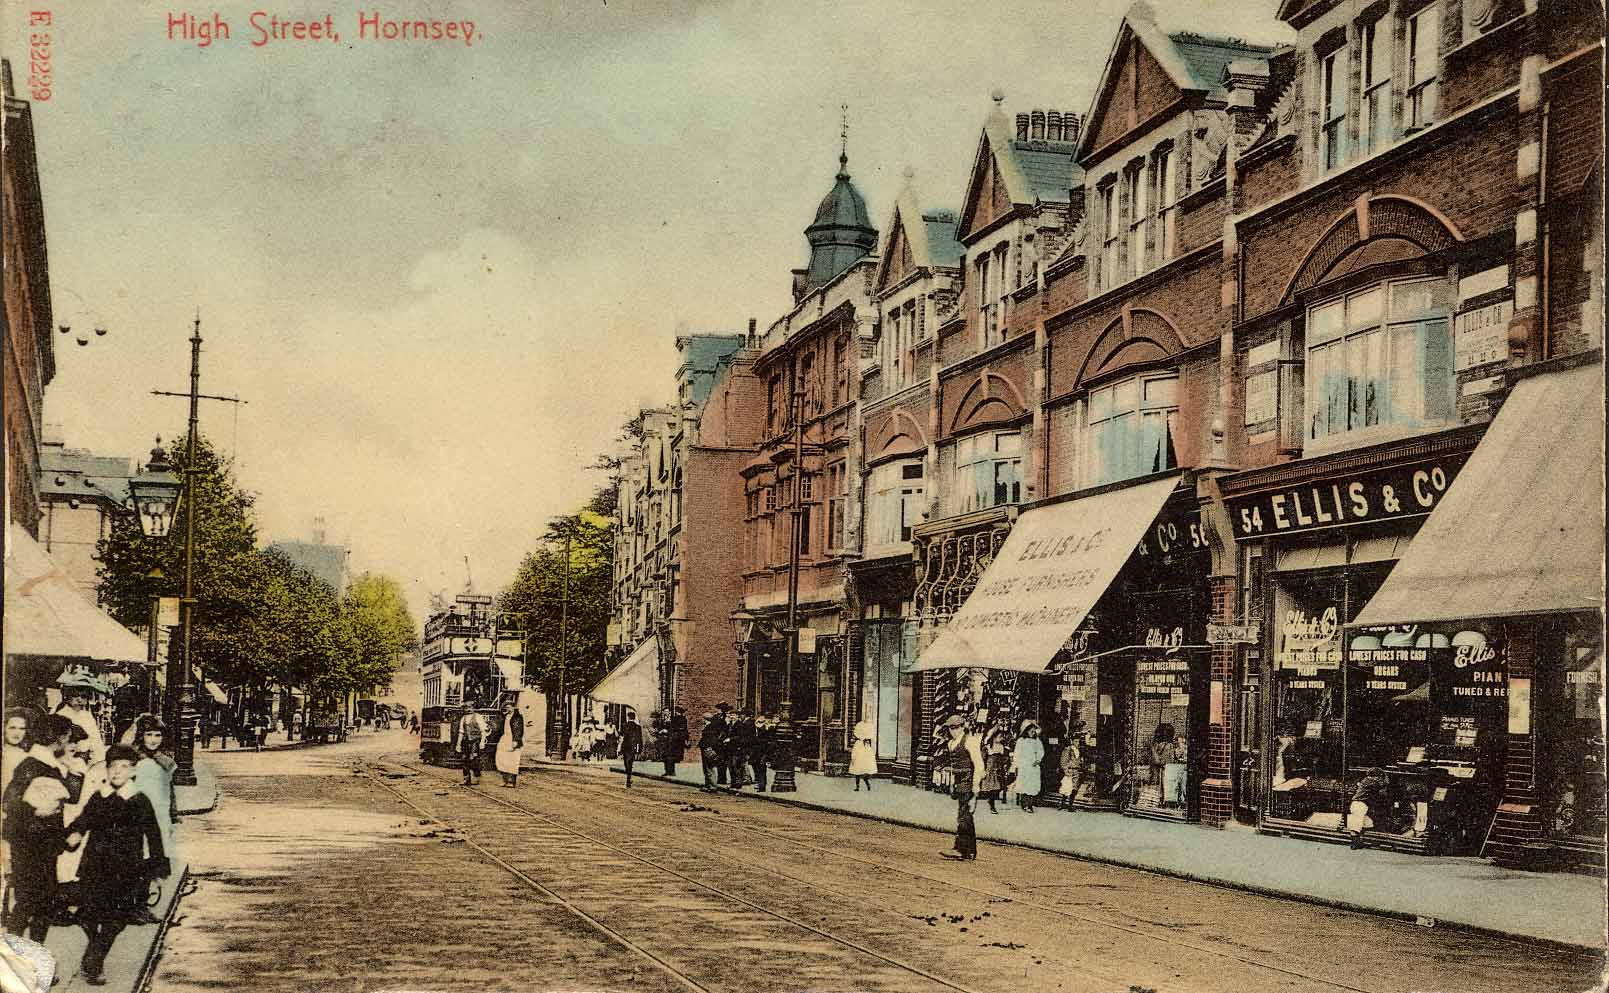 Hornsey Village Postcards Hornsey Historical Society